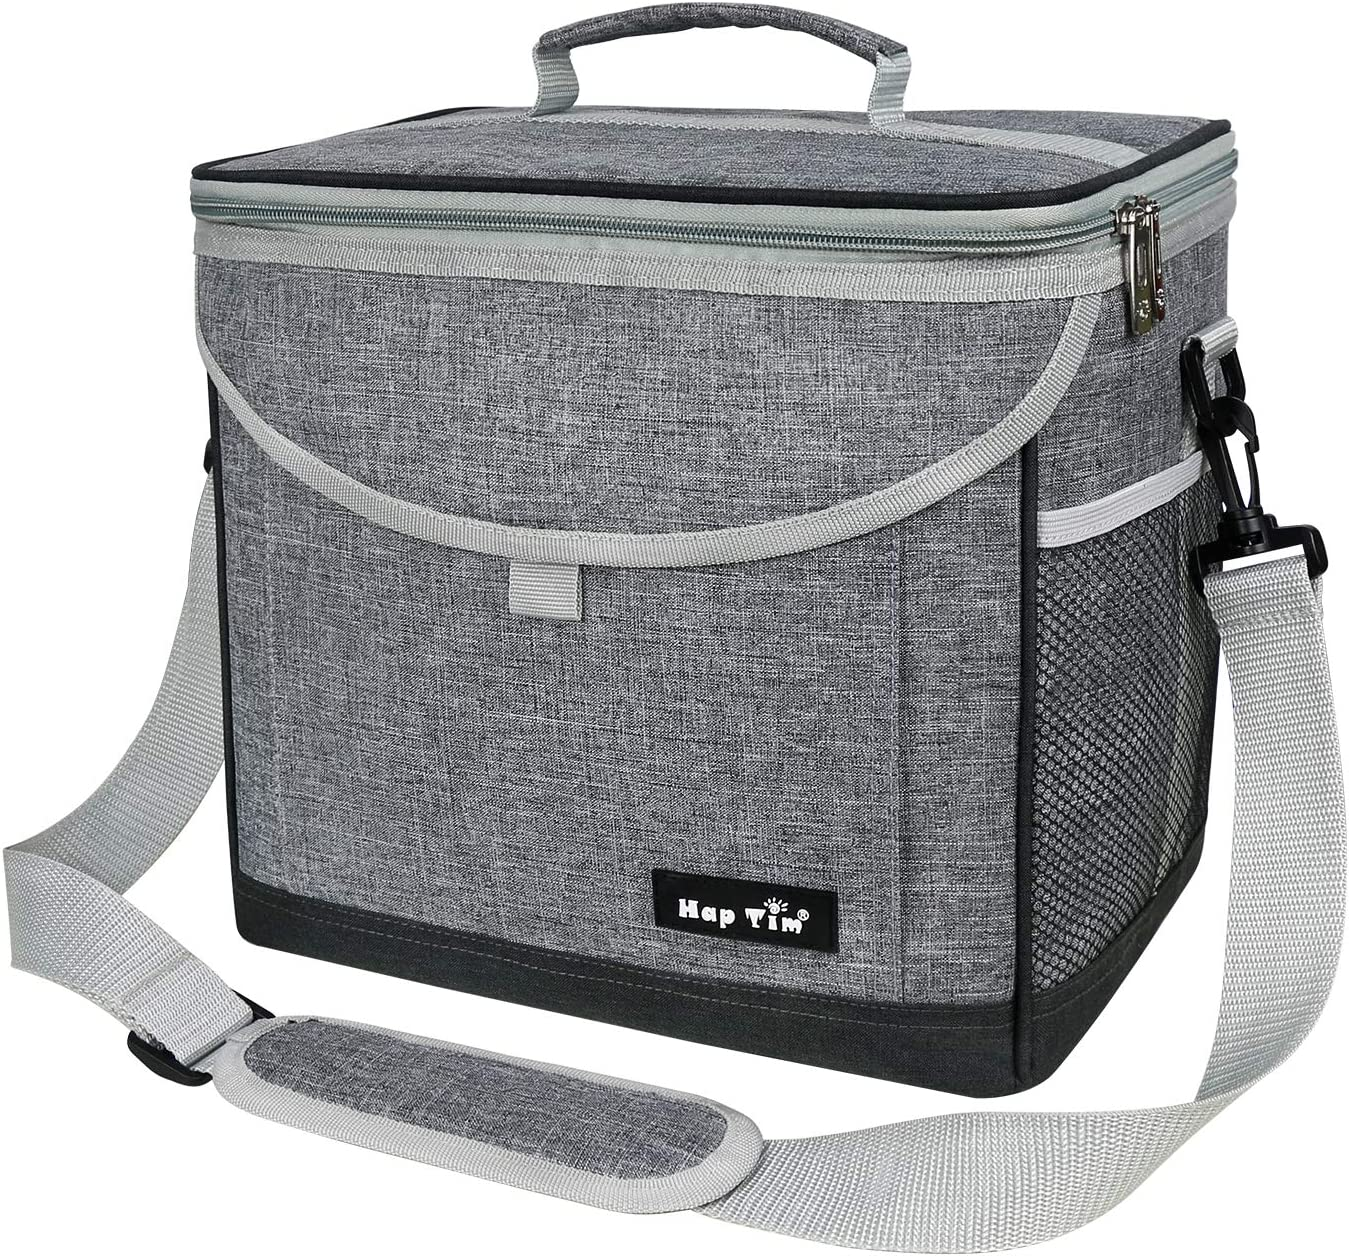 Hap Tim Soft San Francisco Mall Cooler Bag Lunch 40 Fashion Waterproof Gro 24 Large Can